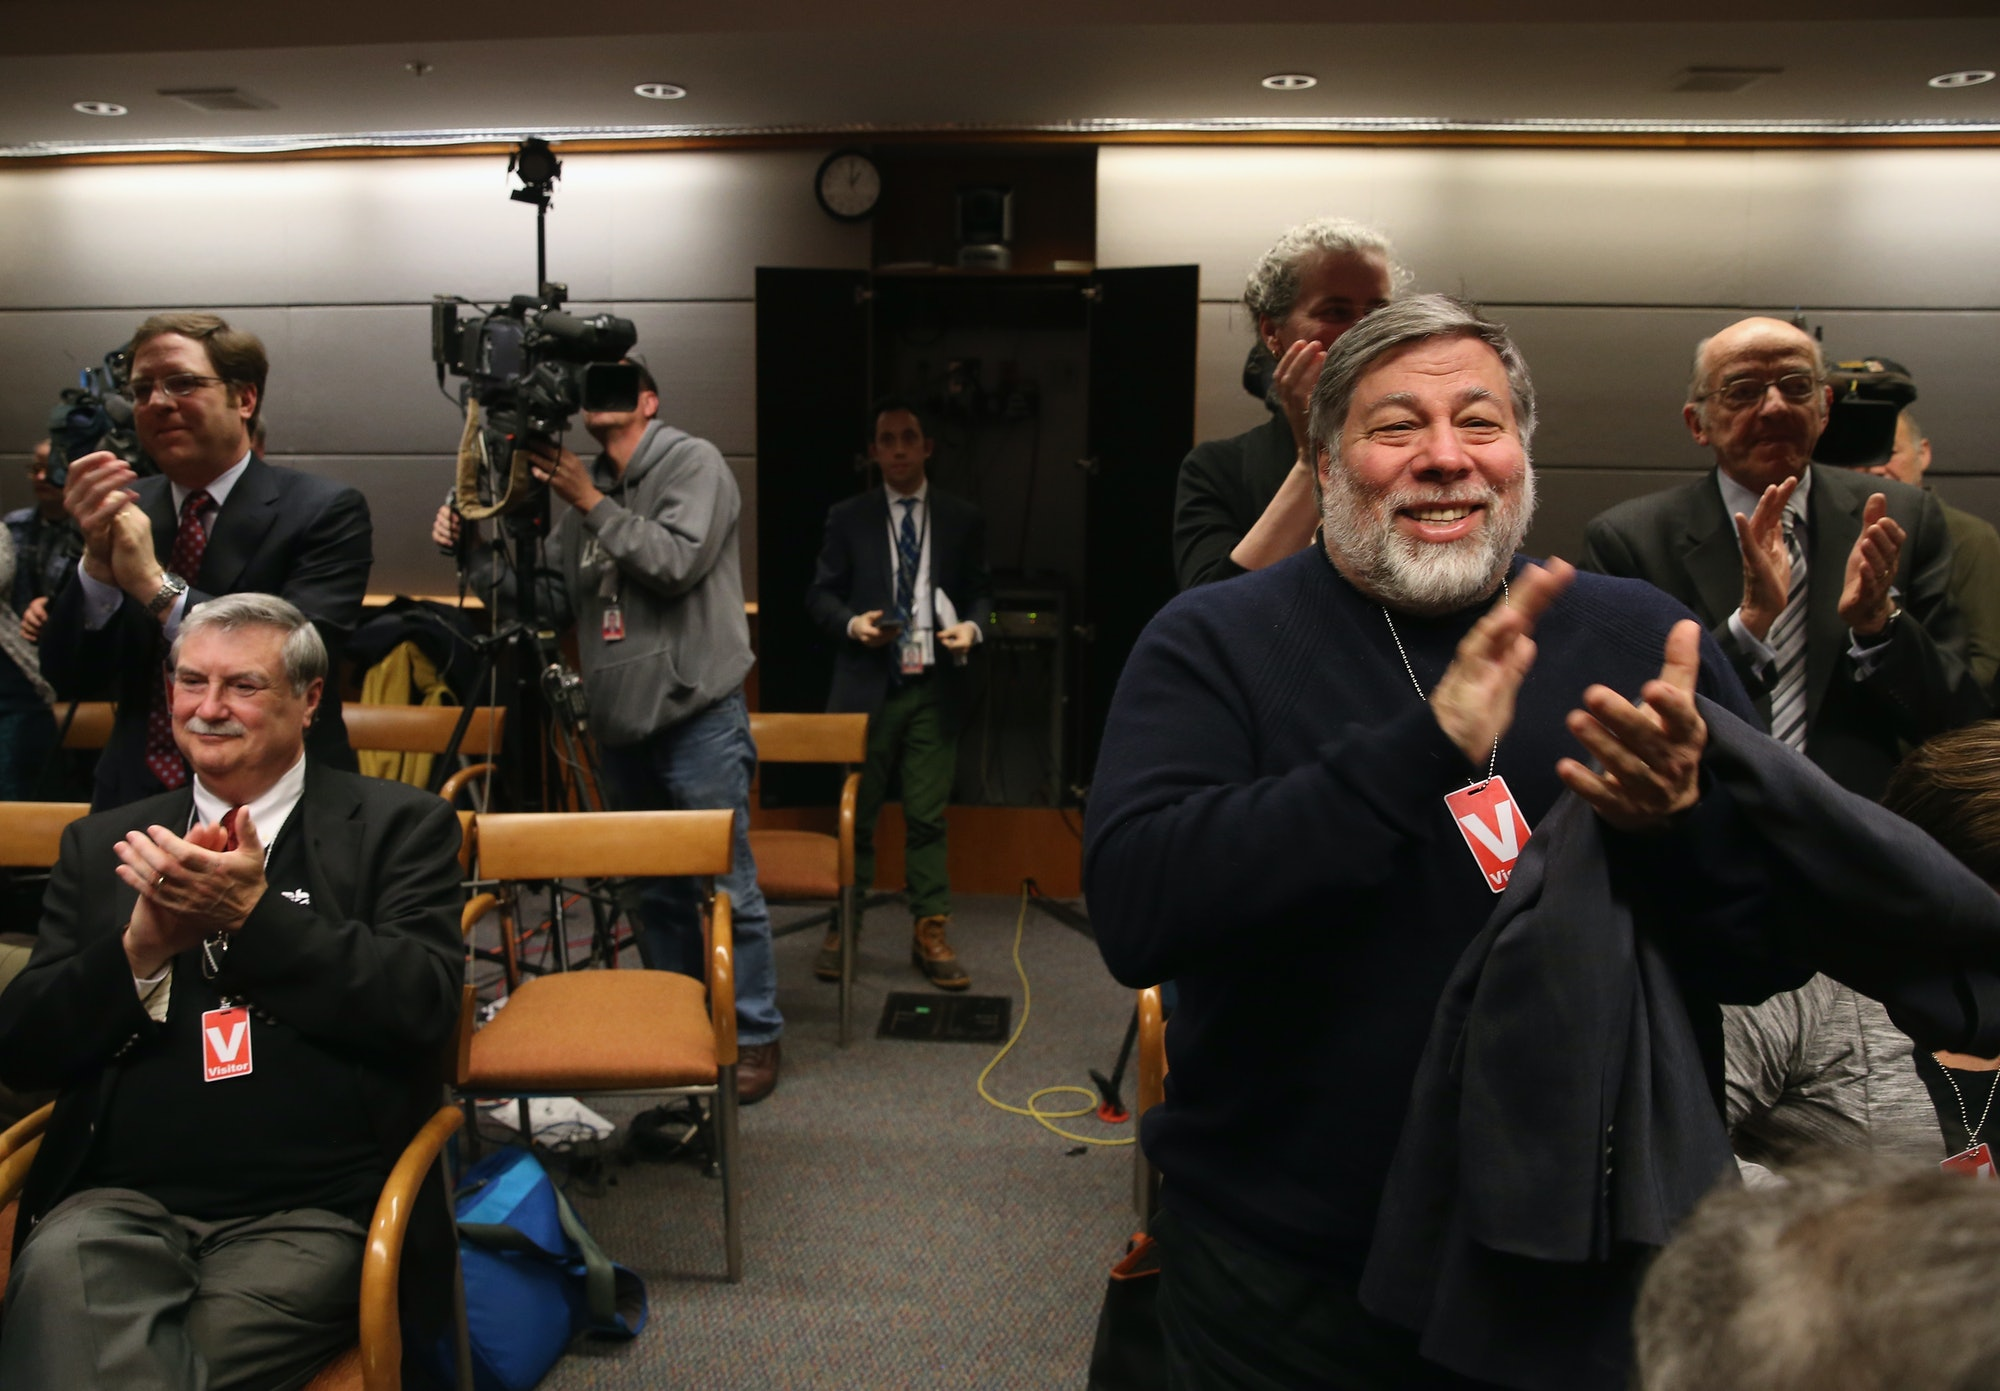 WASHINGTON, DC - FEBRUARY 26: Apple Co-Founder Steve Wozniak (R) applauds after the Federal Communications Commission voted to approve Net Neutrality during a hearing at the FCC headquarters February 26,2015in Washington, DC. Today the FCC voted to approve regulating Internet service like a public utility, prohibiting companies from paying for faster lanes on the Internet. (Photo by Mark Wilson/Getty Images)